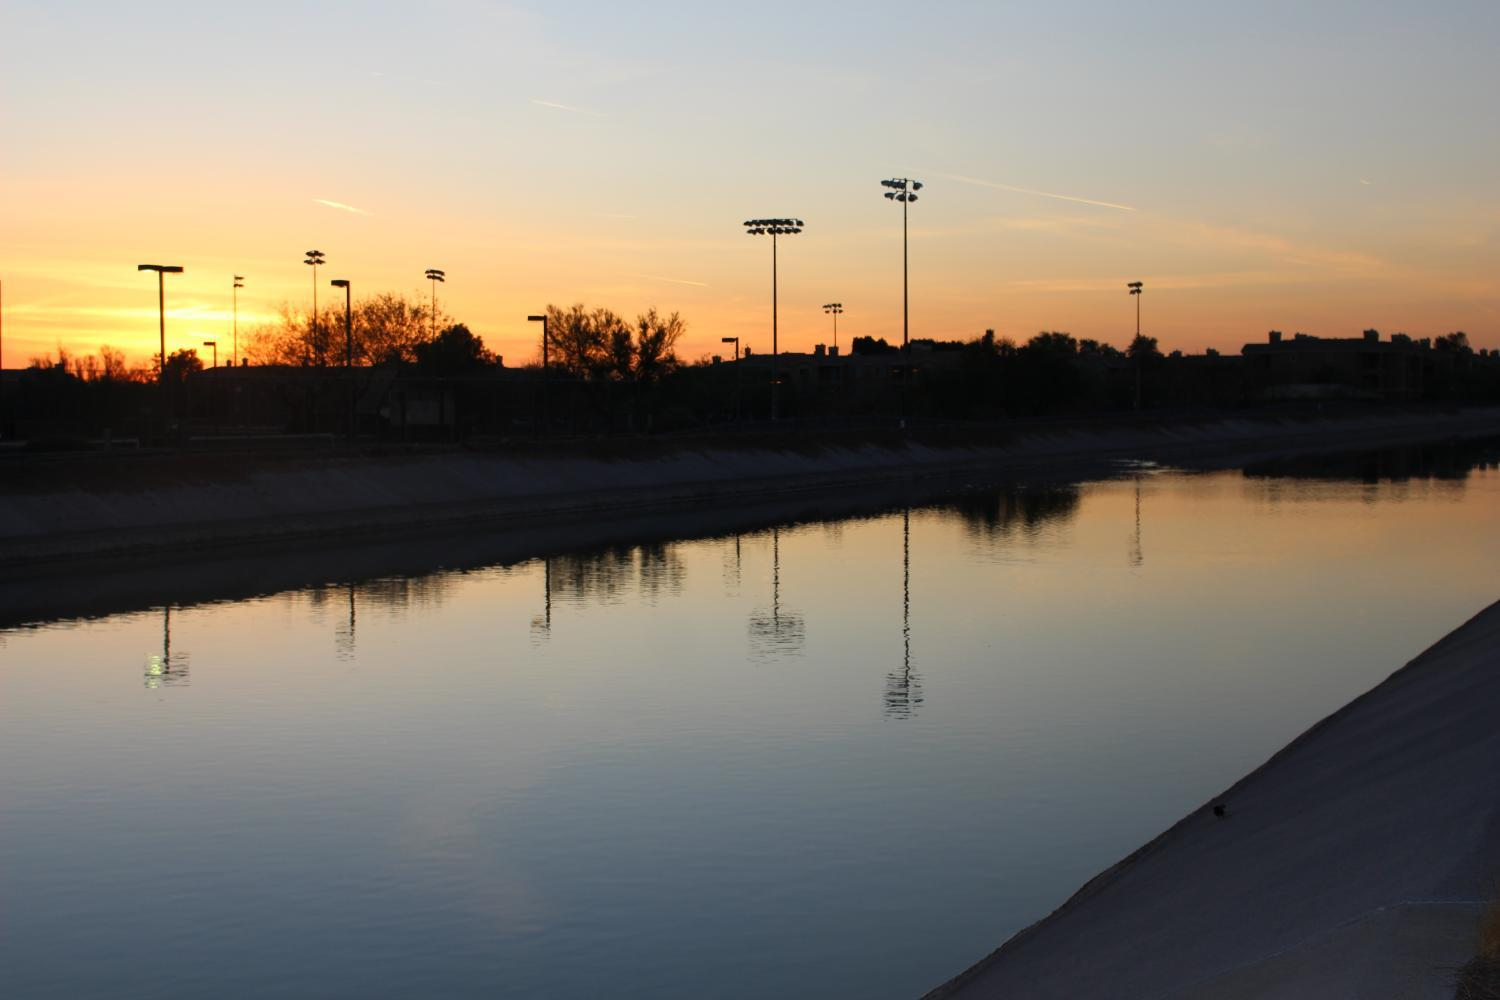 A Central Arizona Project canal in Scottsdale